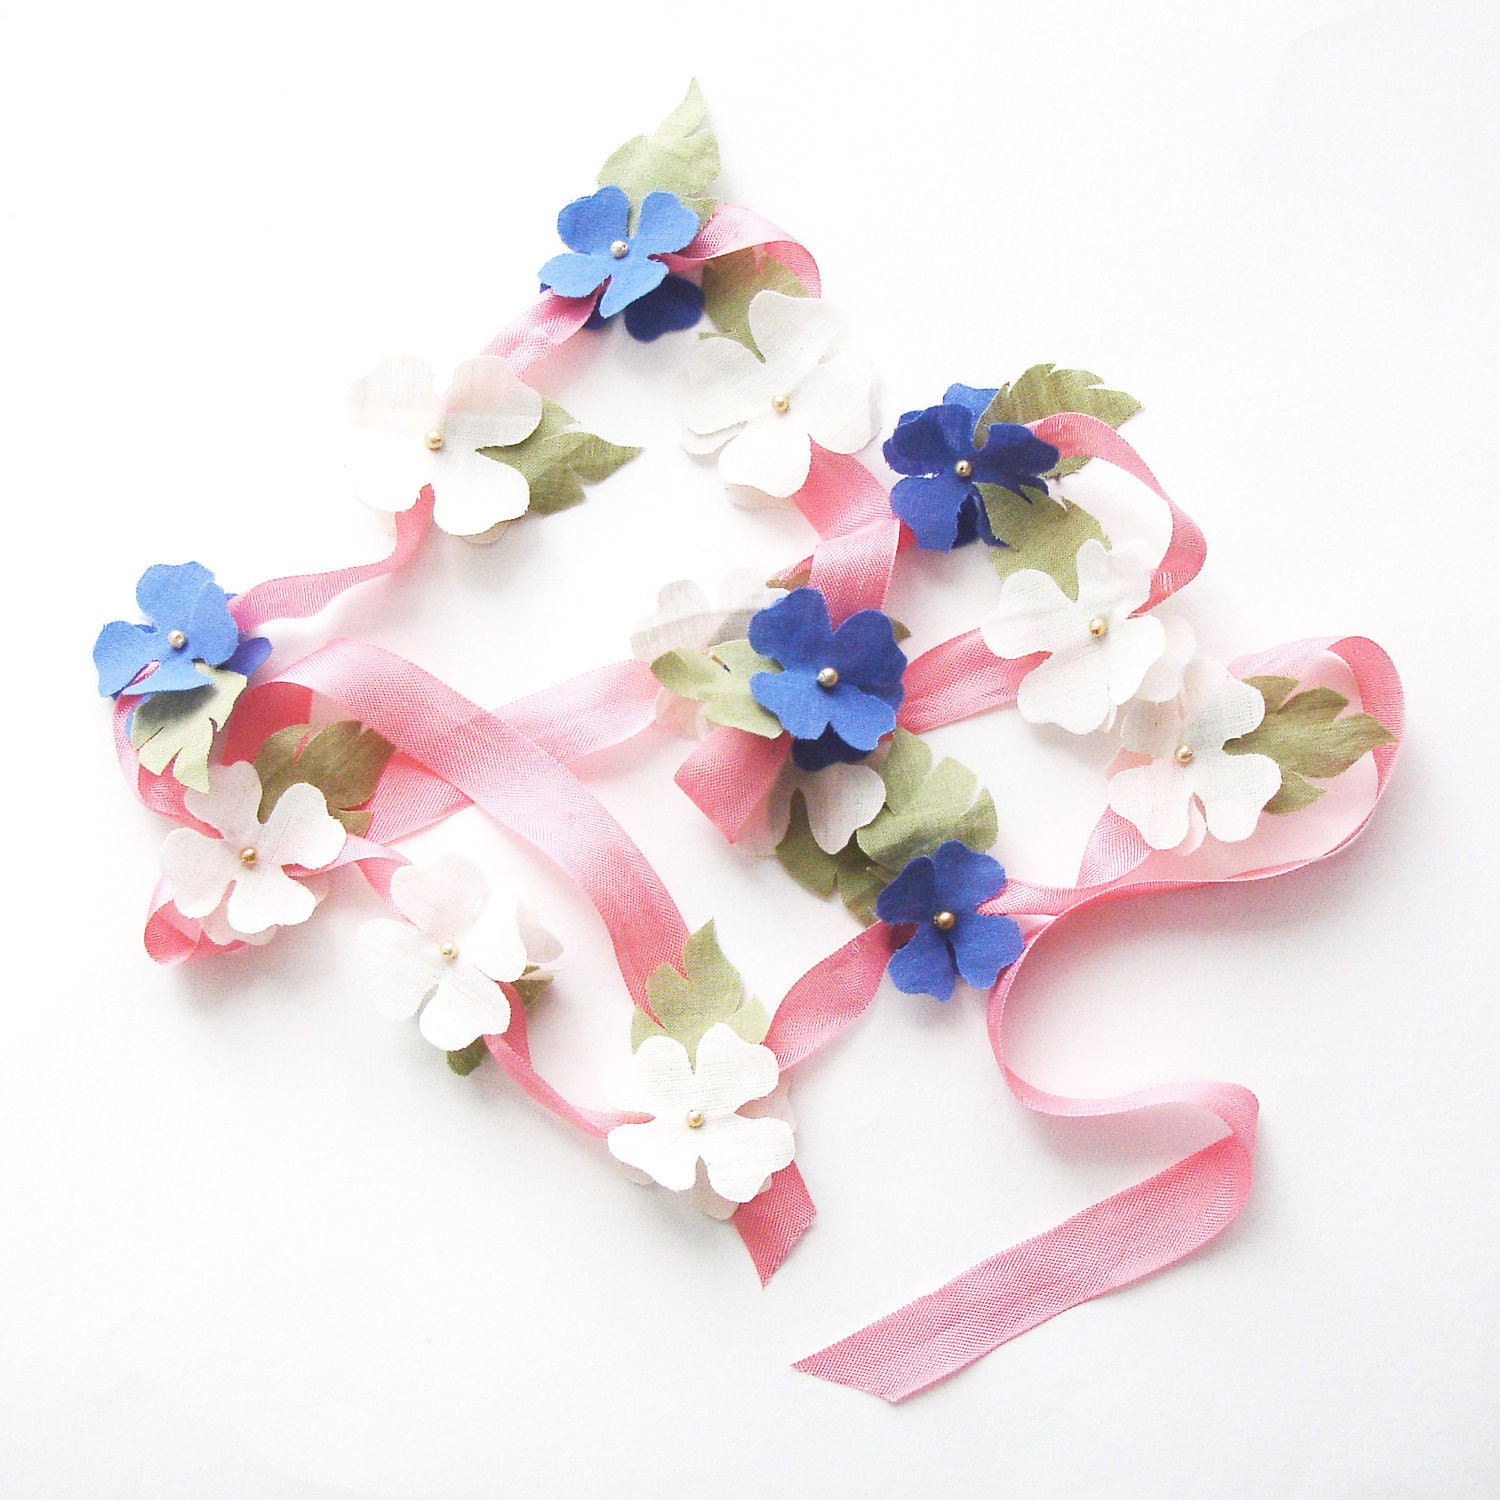 Fabric Flower Garland in fairtrade organic cotton and vintage ribbon - pink/ivory/indigo